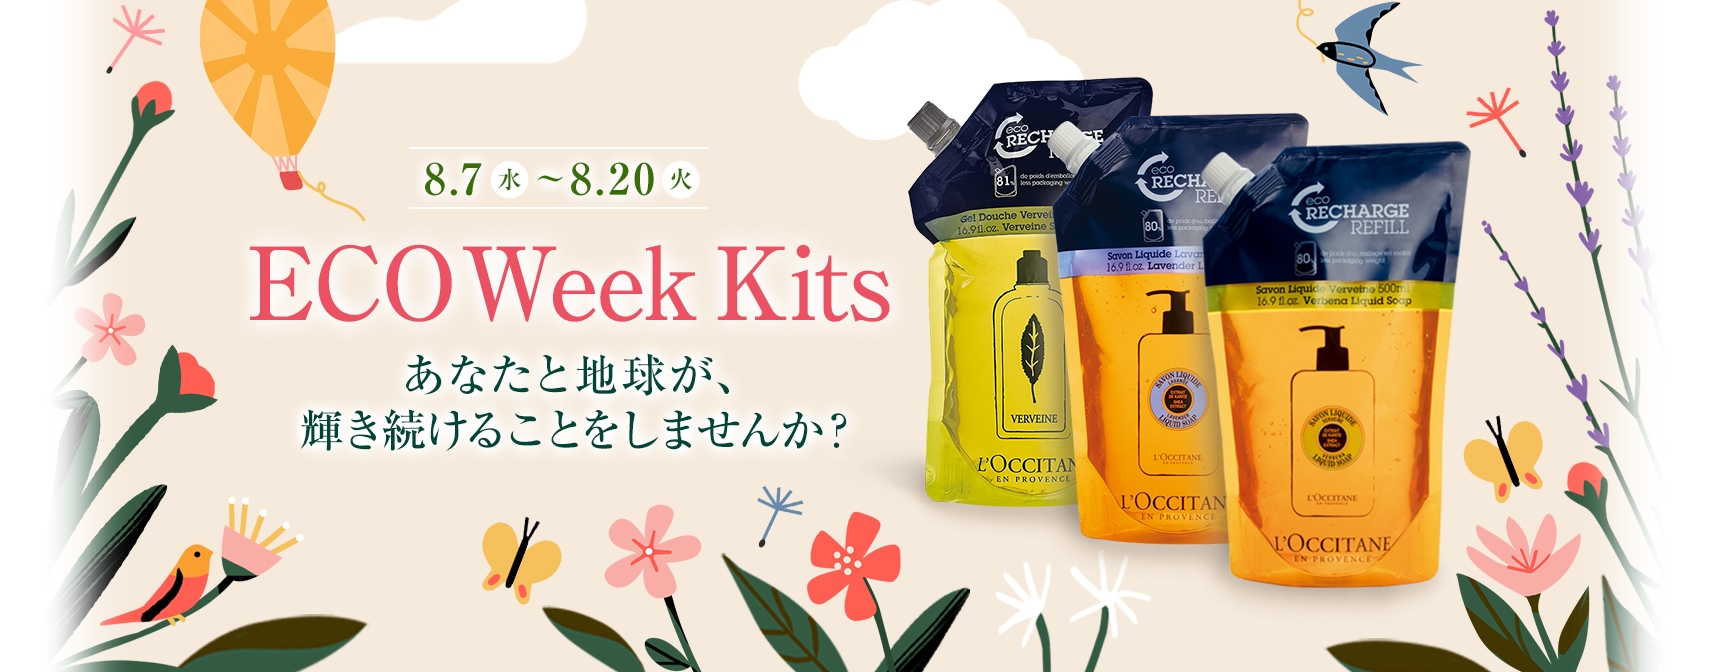 ECO Week Kits